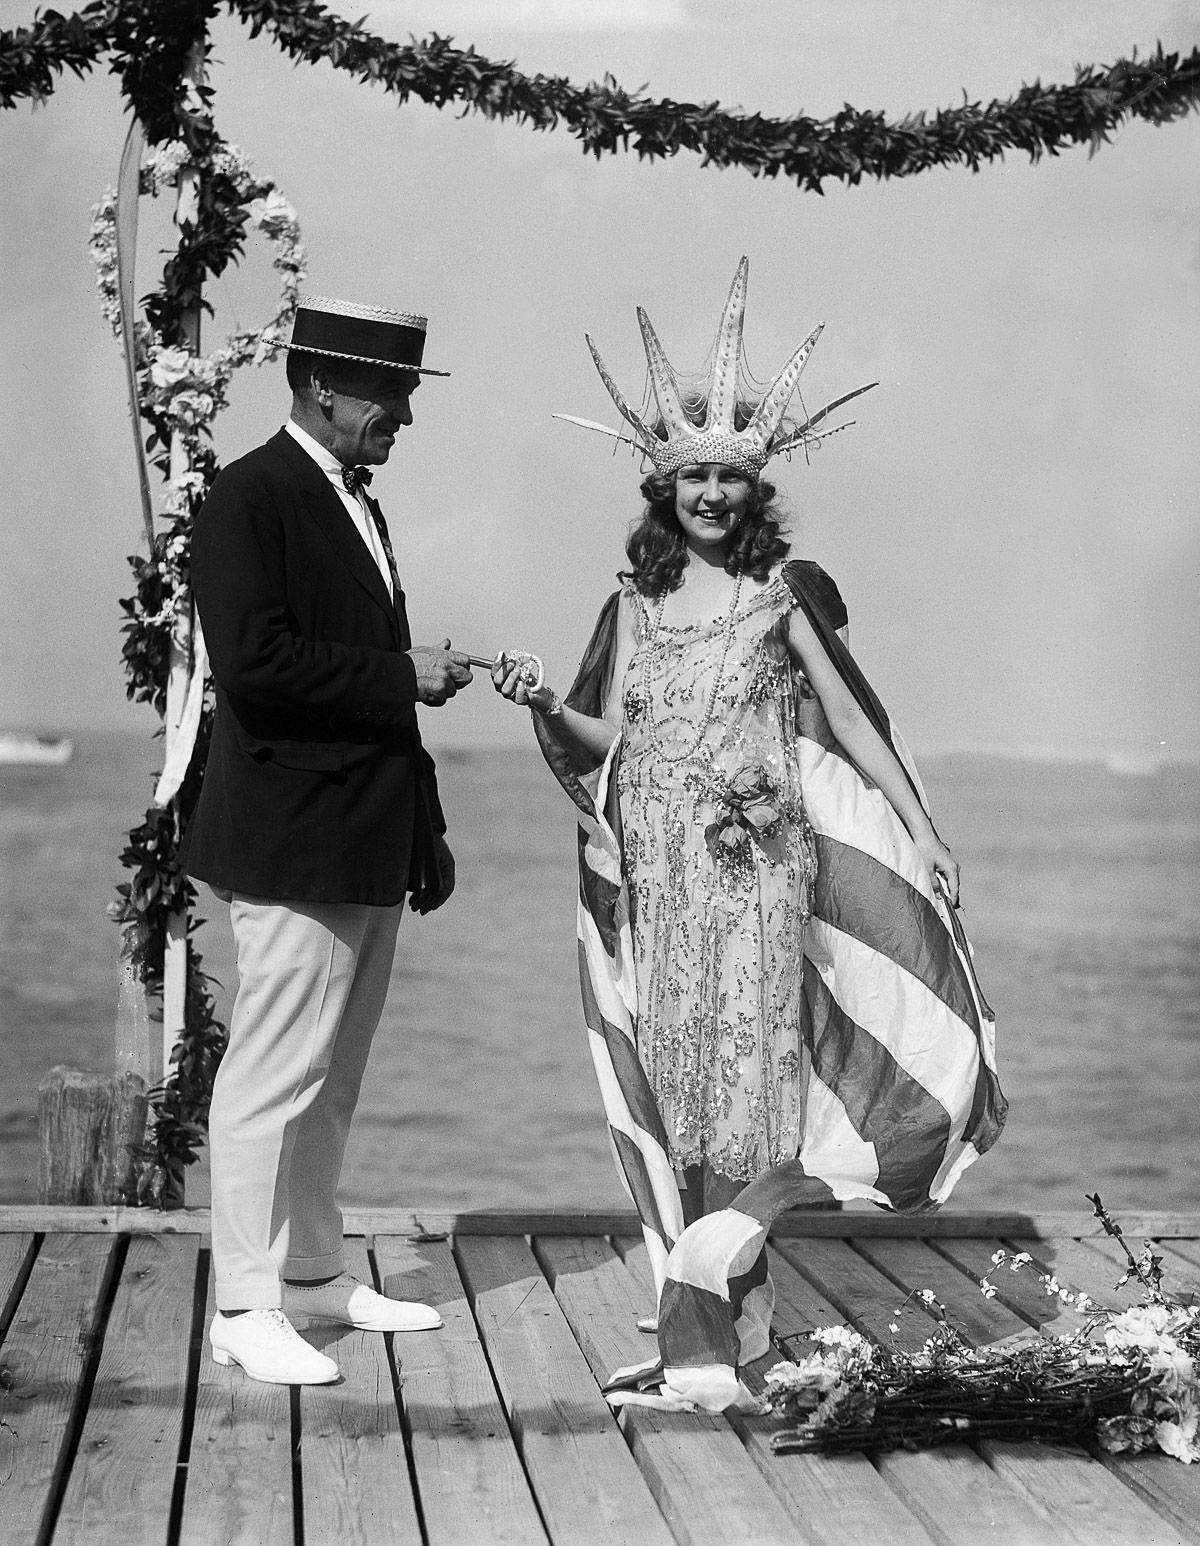 Sept. 7, 1922 - Atlantic City Mayor Edward L. Bader hands the key to the city to the newly crowned Miss America.